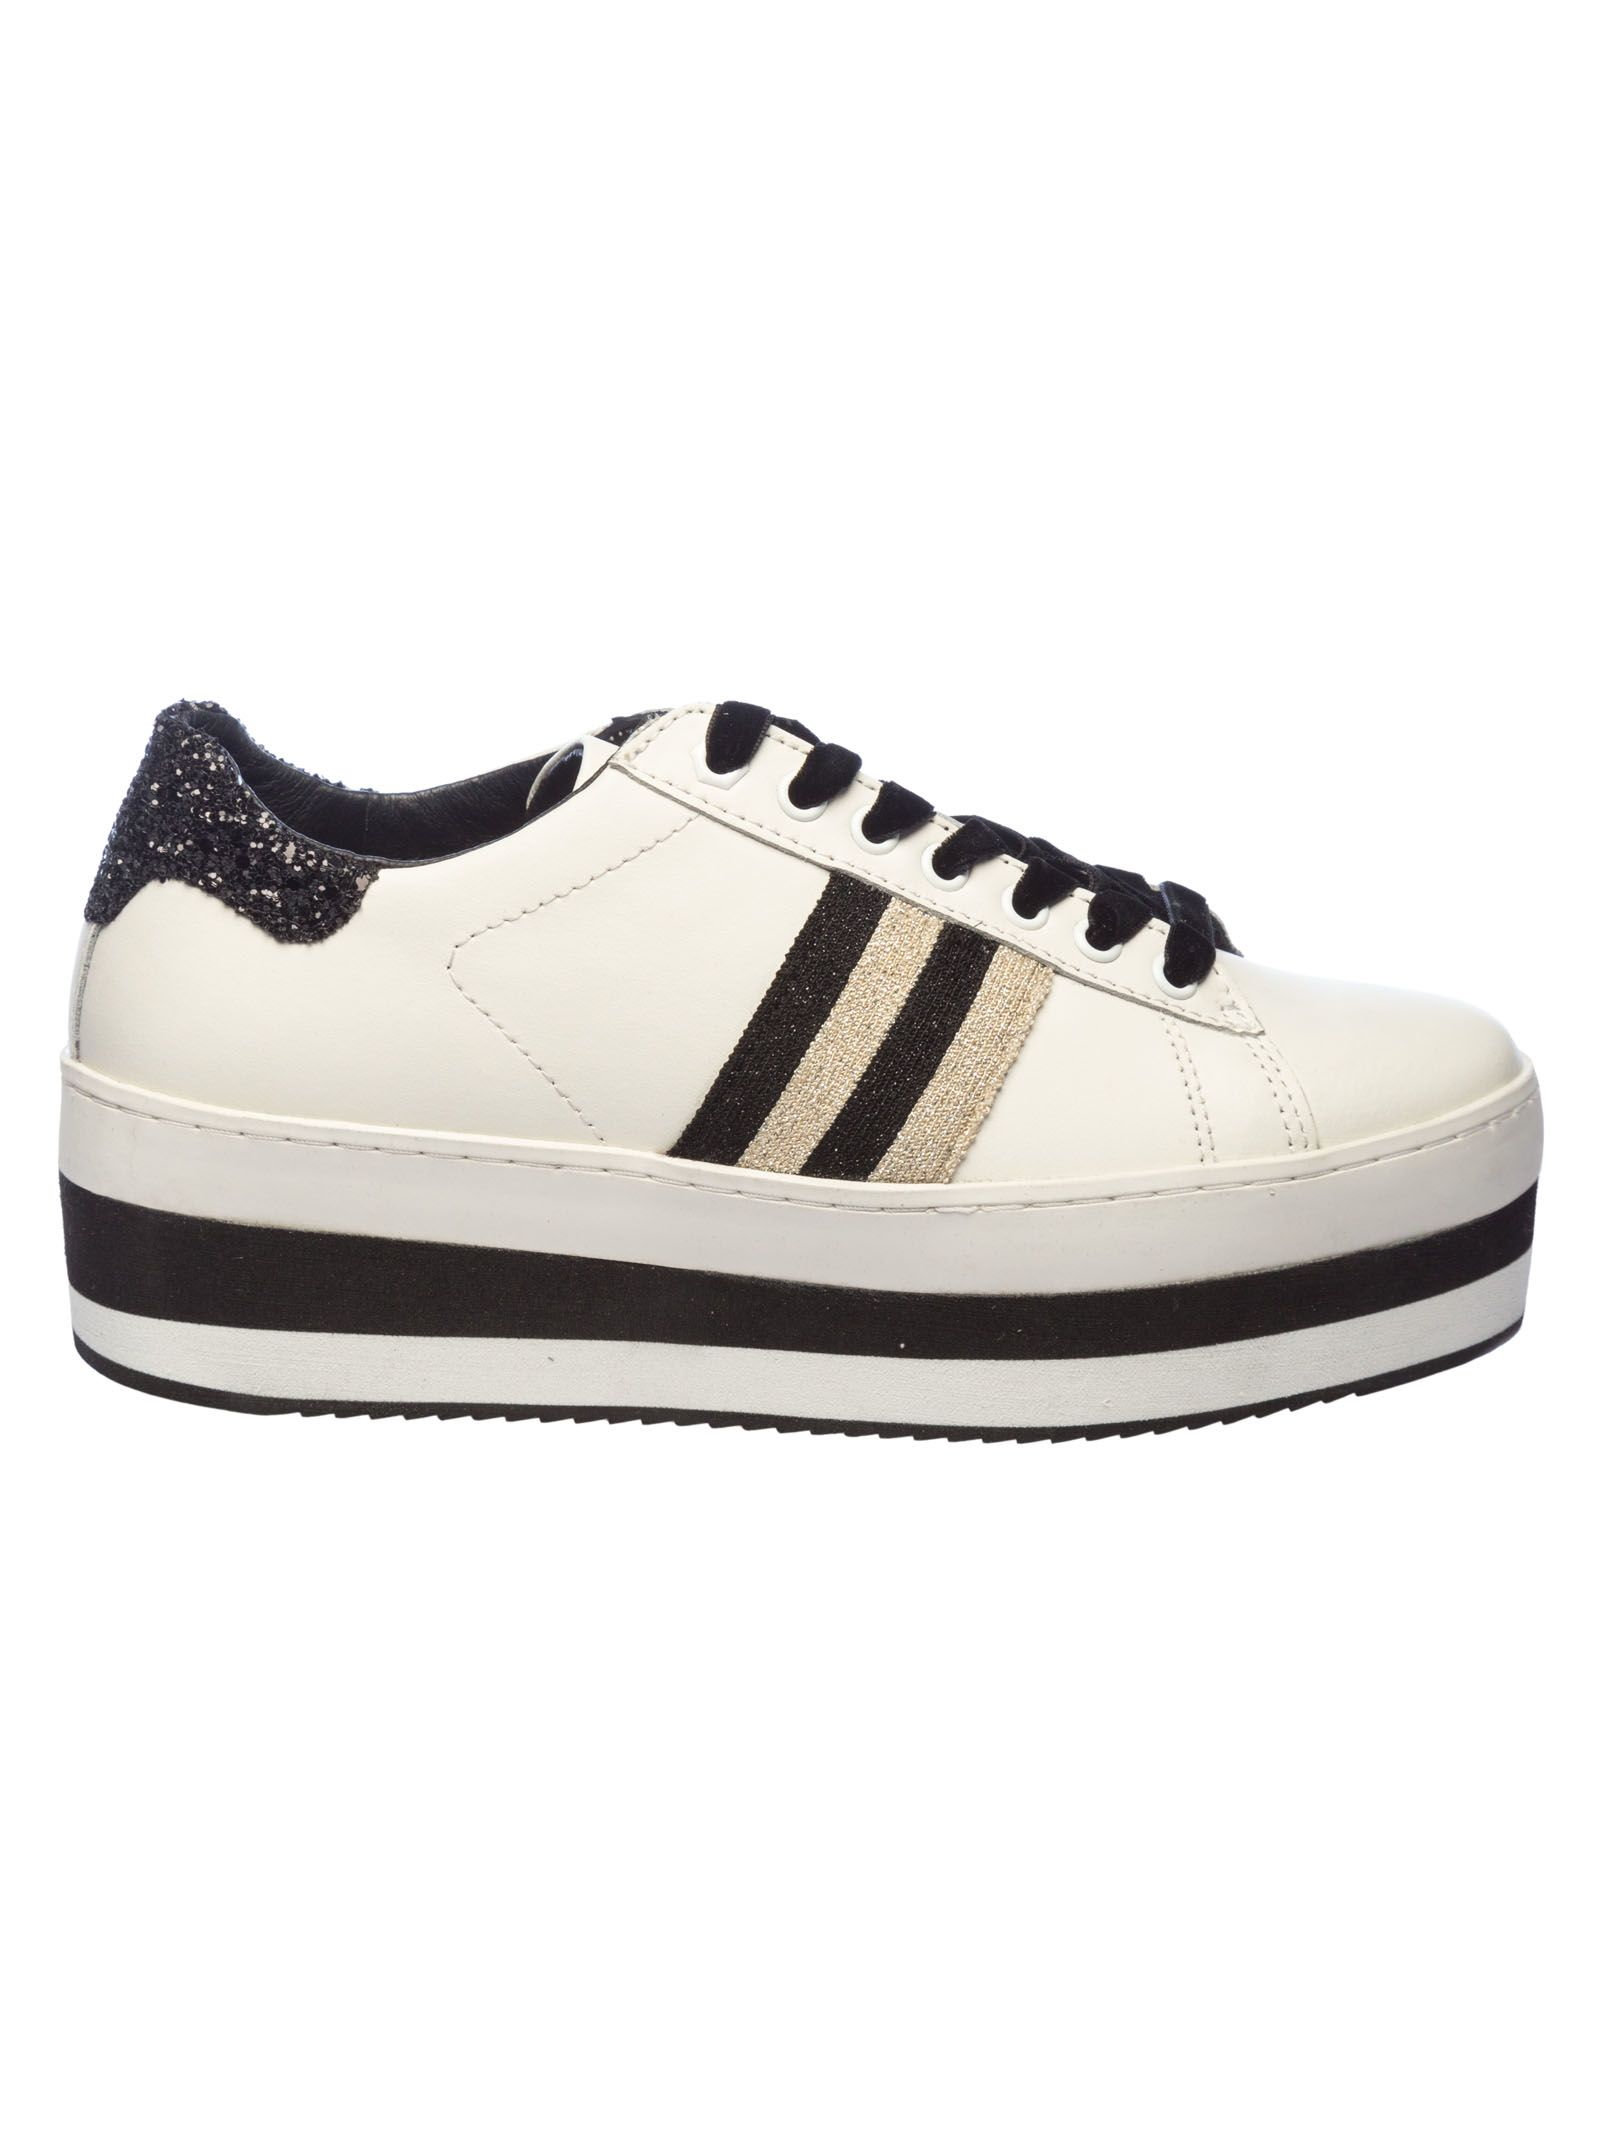 MOA COLLECTION Moa Usa M926 Platform Sneakers in White/Black